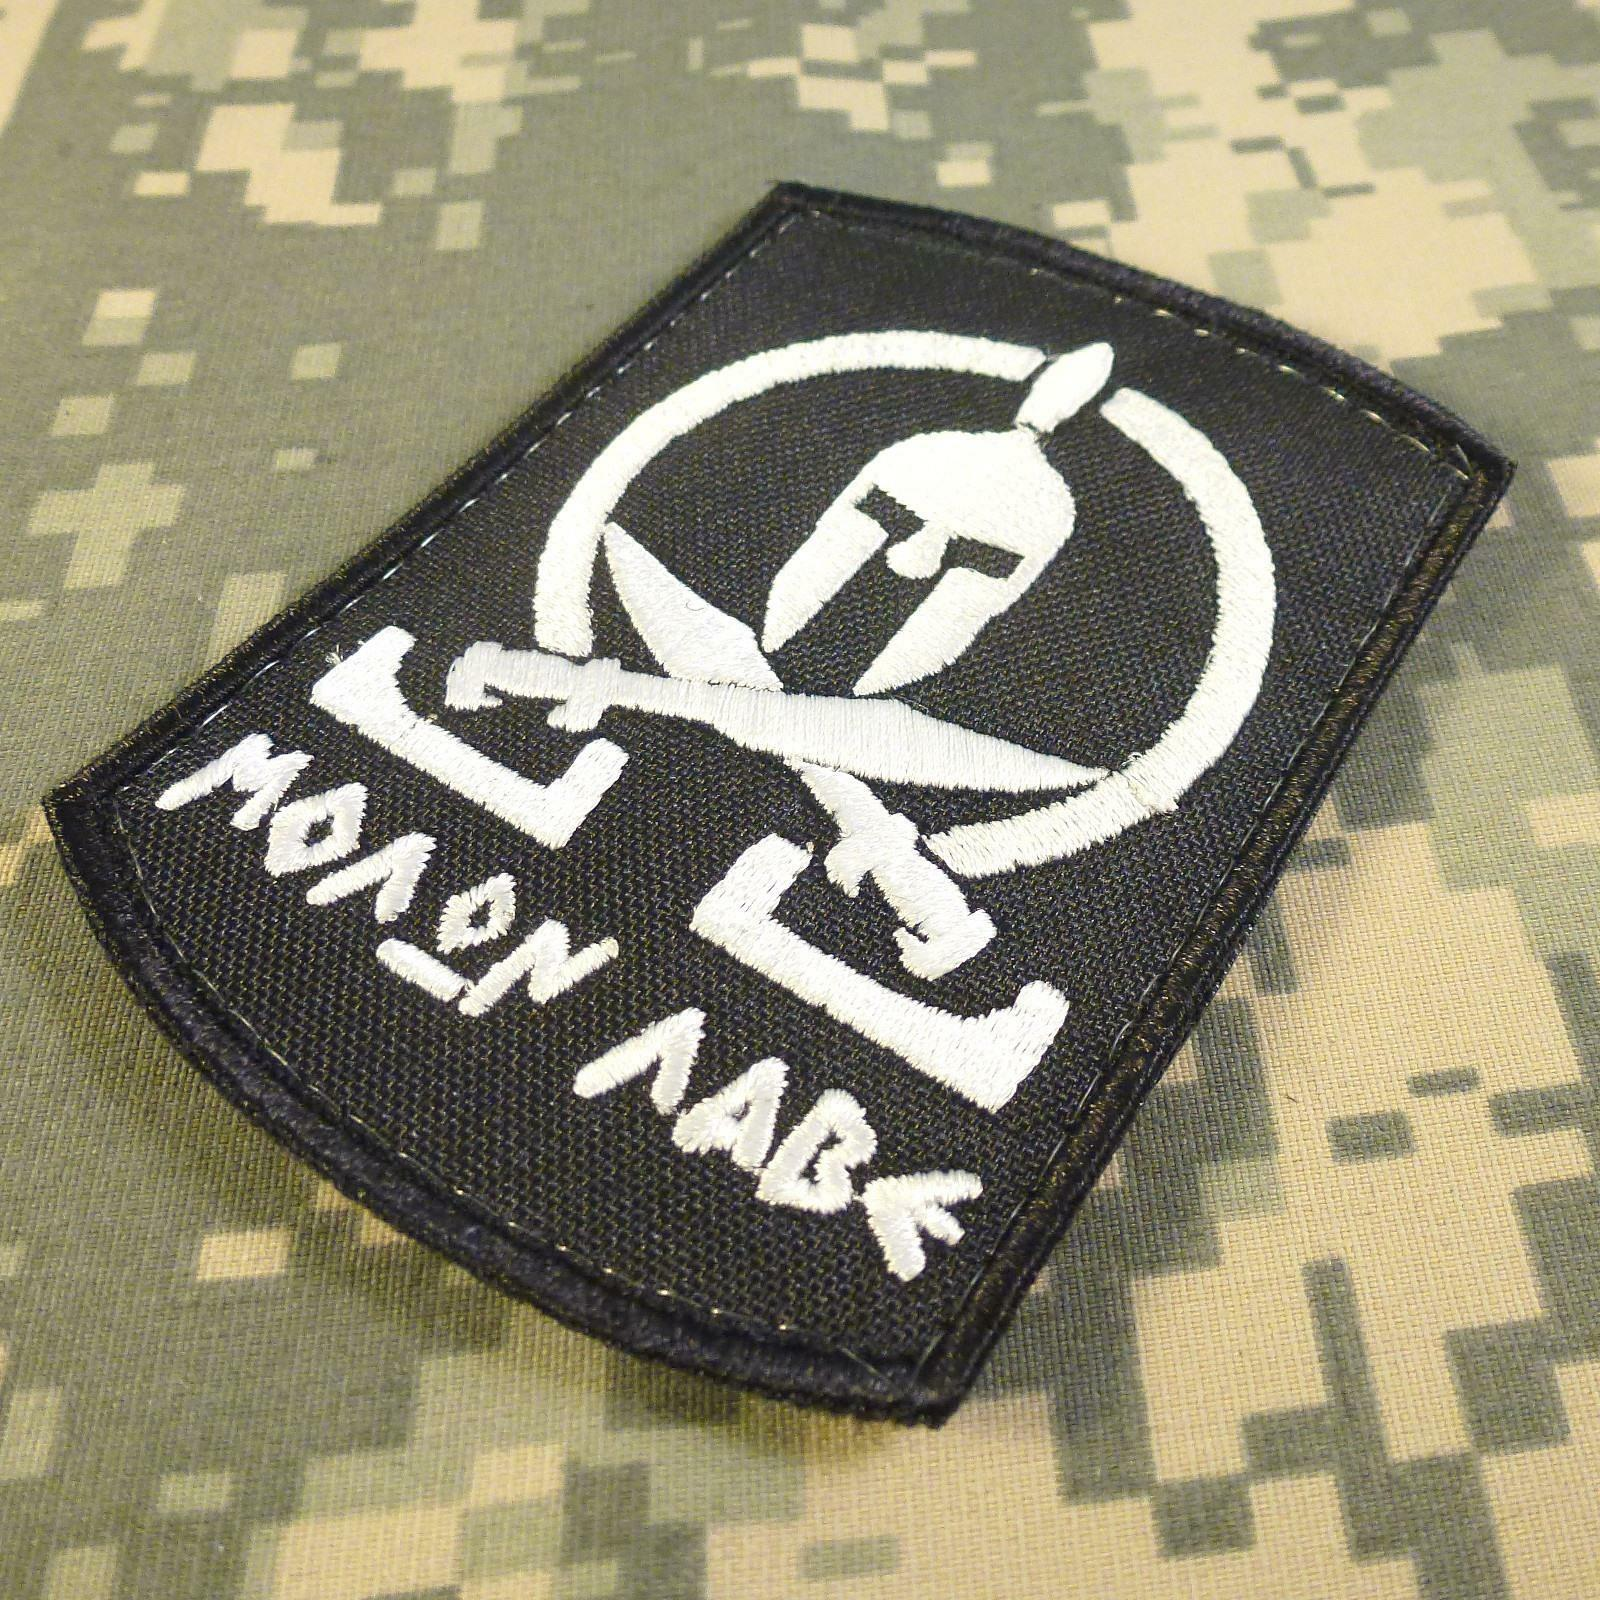 2AFTER1 Spartan Molon Labe Tactical Morale Army Milspec Embroidered Touch Fastener Patch